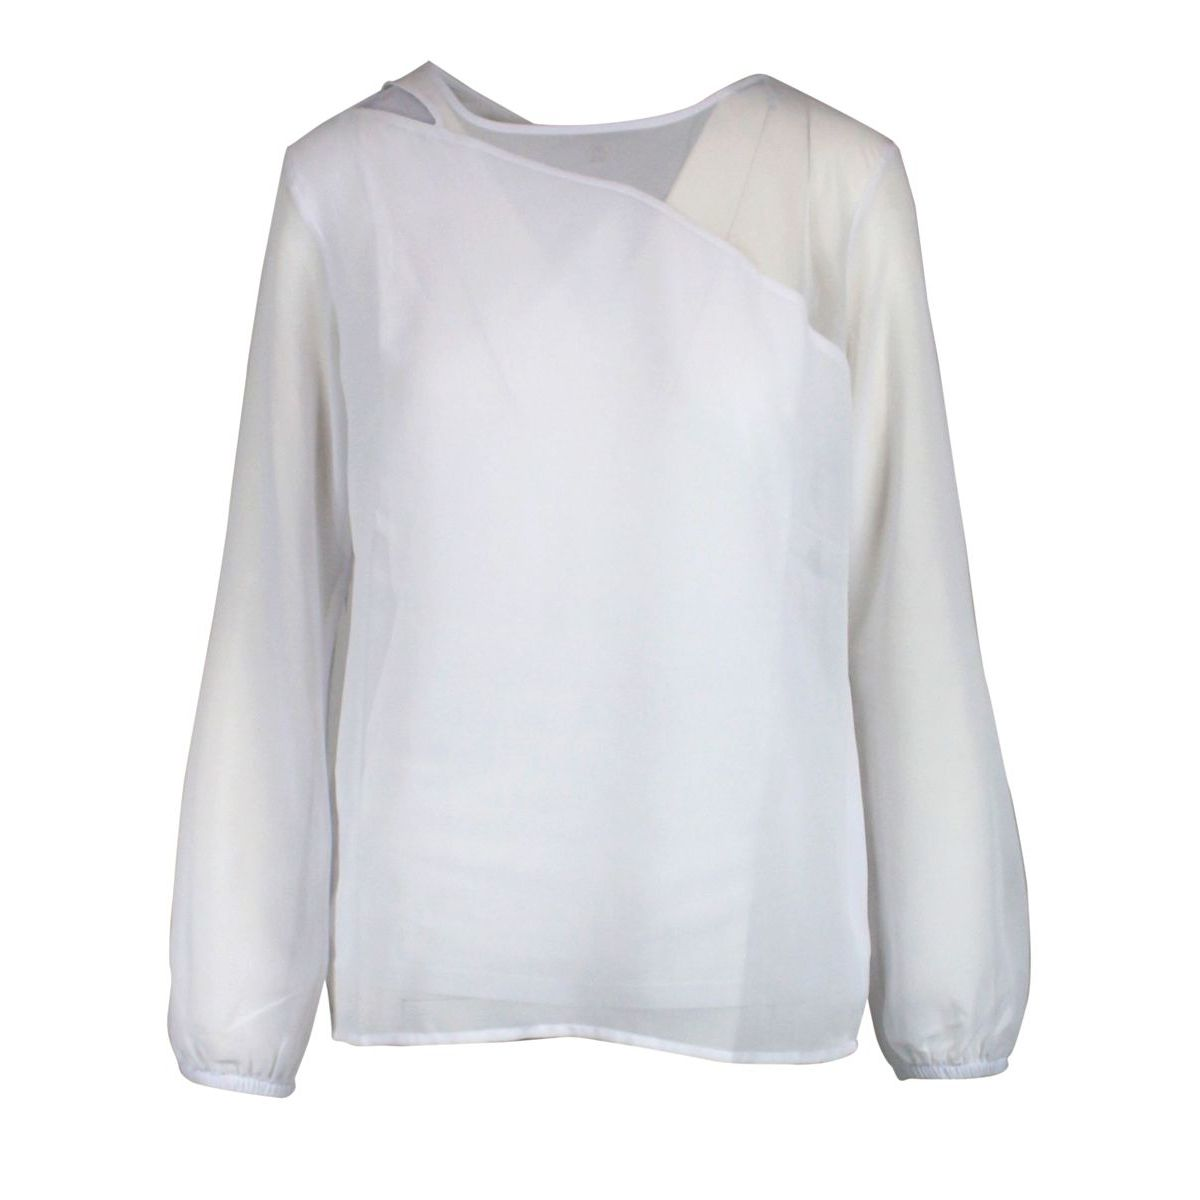 Plain-colored sheer fabric sweater White Patrizia Pepe